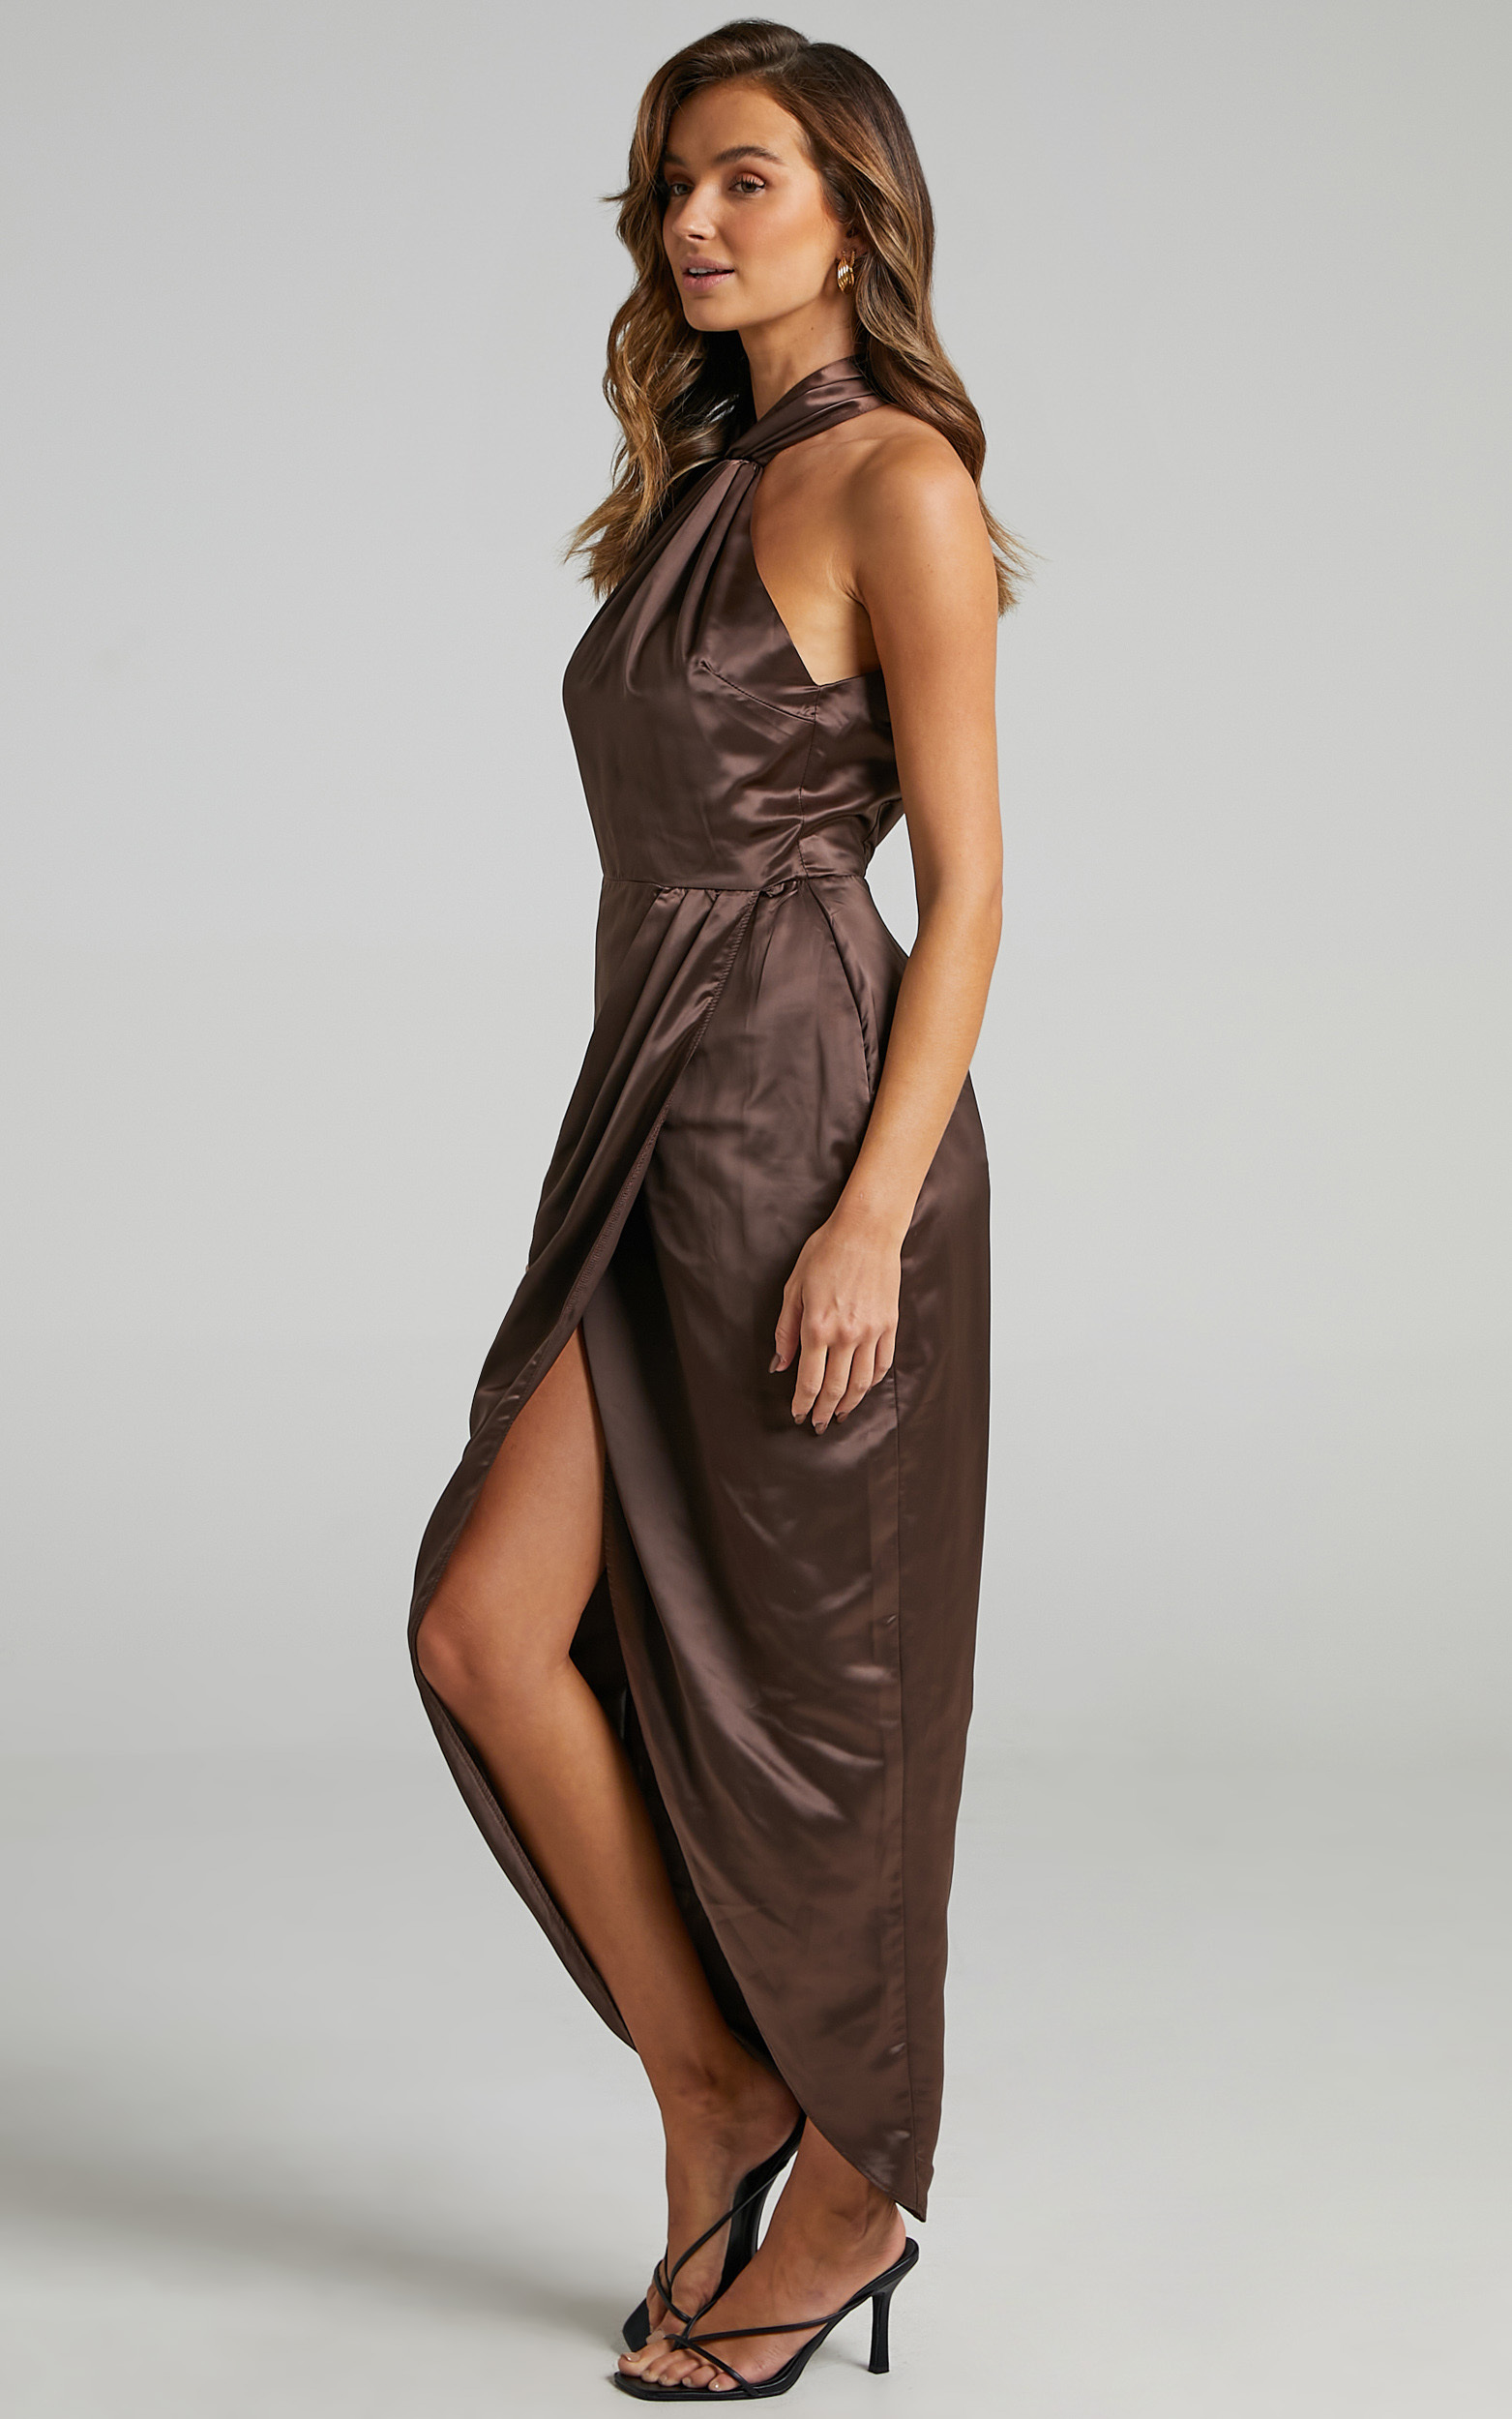 Unreal Dream Dress in Chocolate Satin - 06, BRN1, hi-res image number null